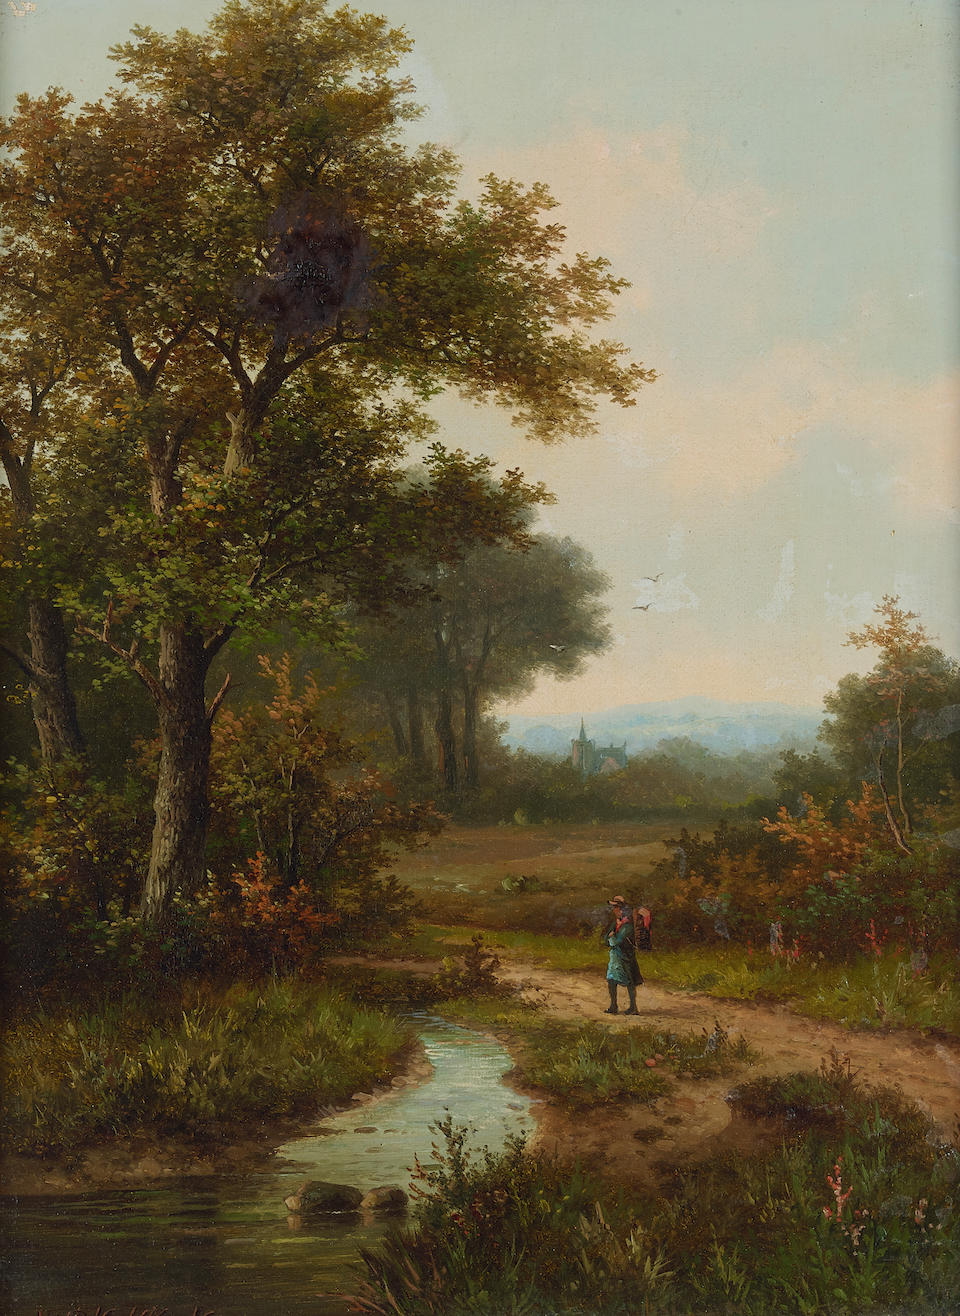 Hendrik Pieter Koekkoek (Dutch, 1843-1927) A landscape with a traveler on a path; and a companion painting (a pair) each 16 x 12in (40.7 x 30.5cm)